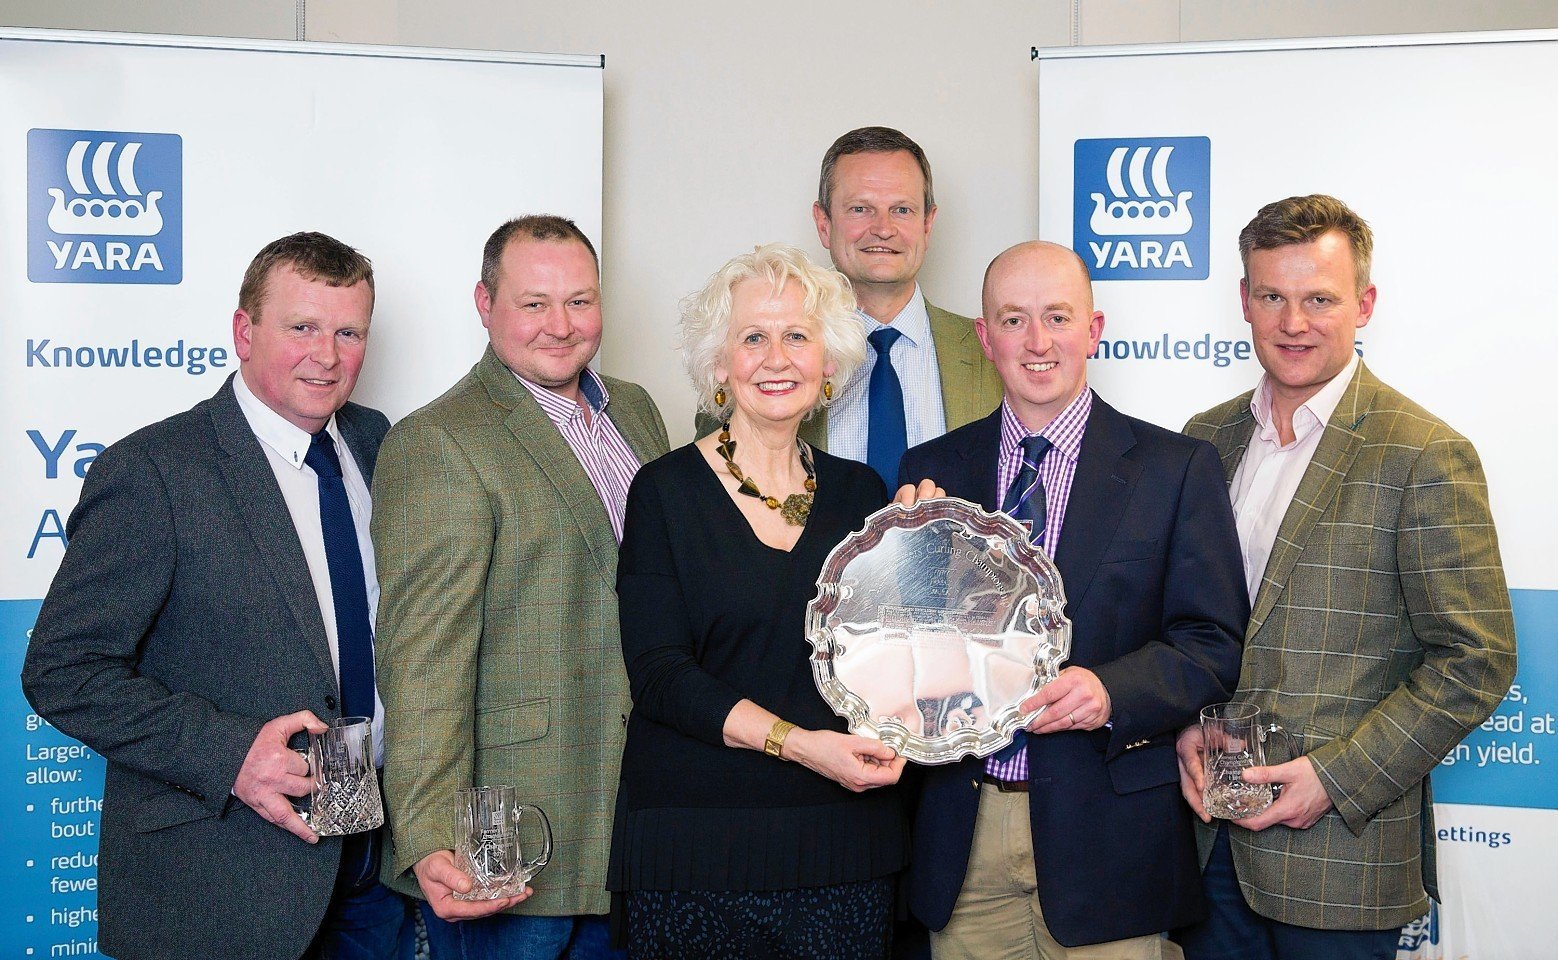 The high road winners - Hamish Robertson, Stuart Stark, Rosie Carne and Peter Smith from Yara, Sandy Reid and John Dunn.